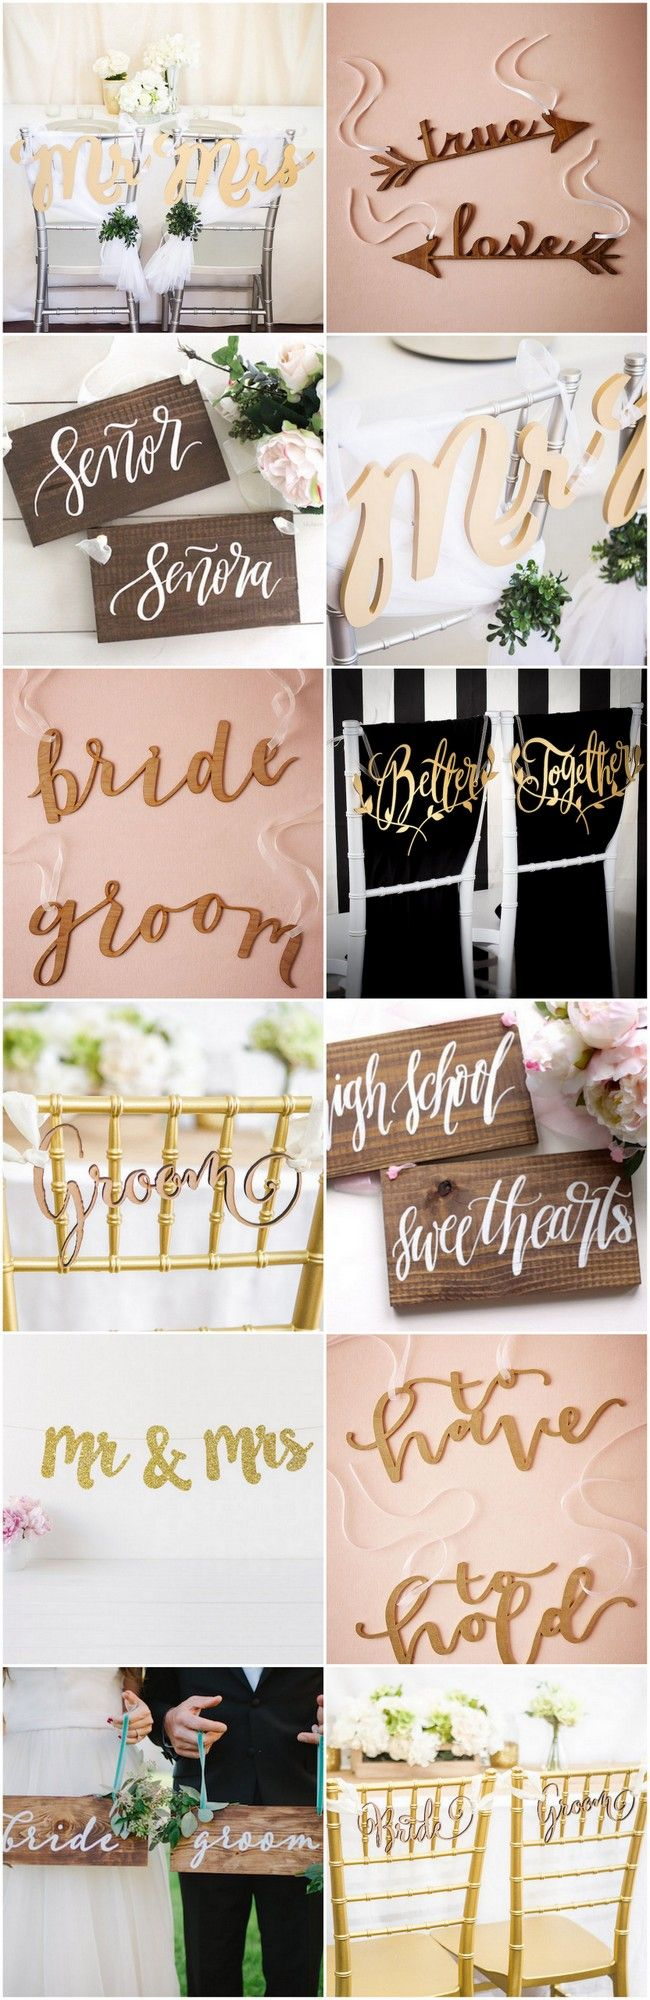 21 Cutest, Most Creative Mr and Mrs Signs for your #Wedding! #newlywedbedroom